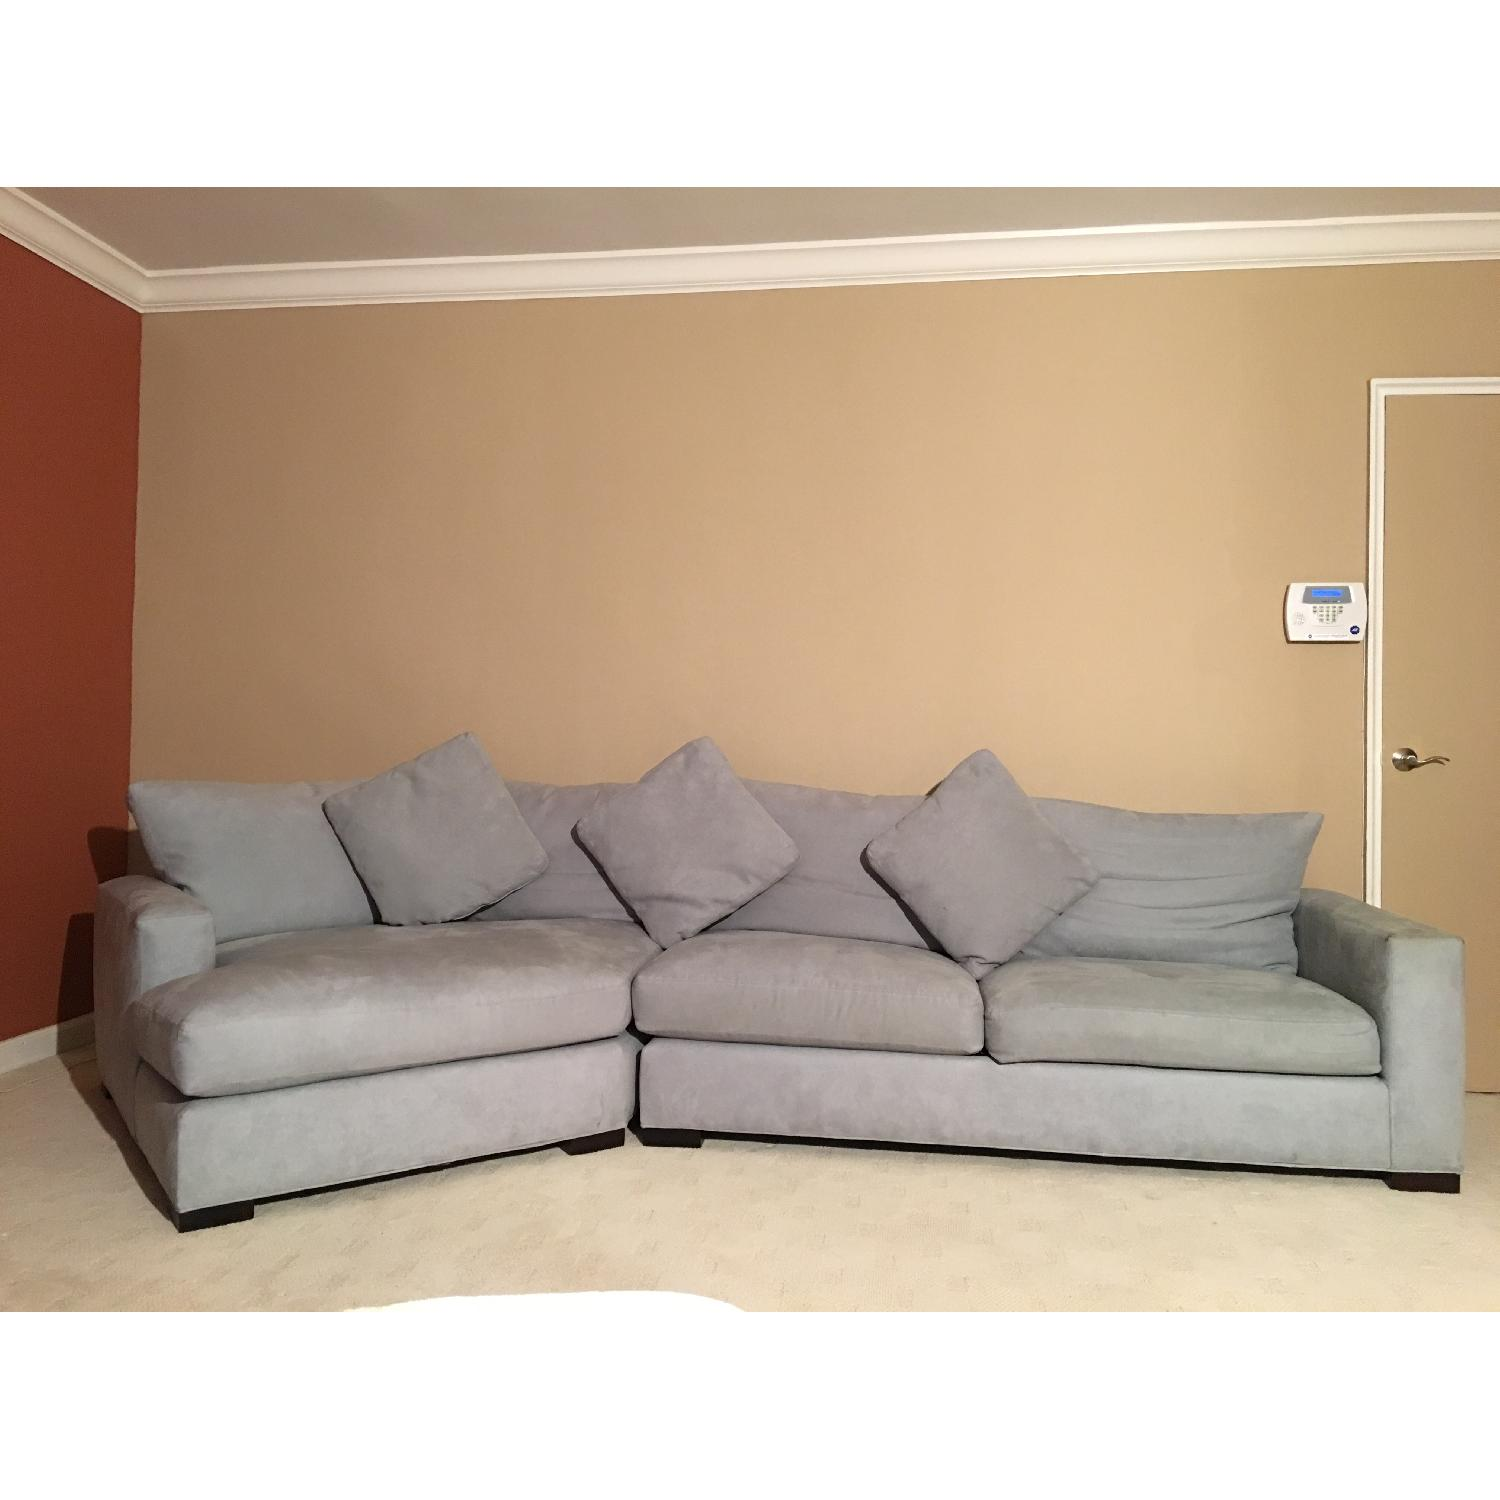 Room & Board Microsuede L-Shaped Couch - image-1